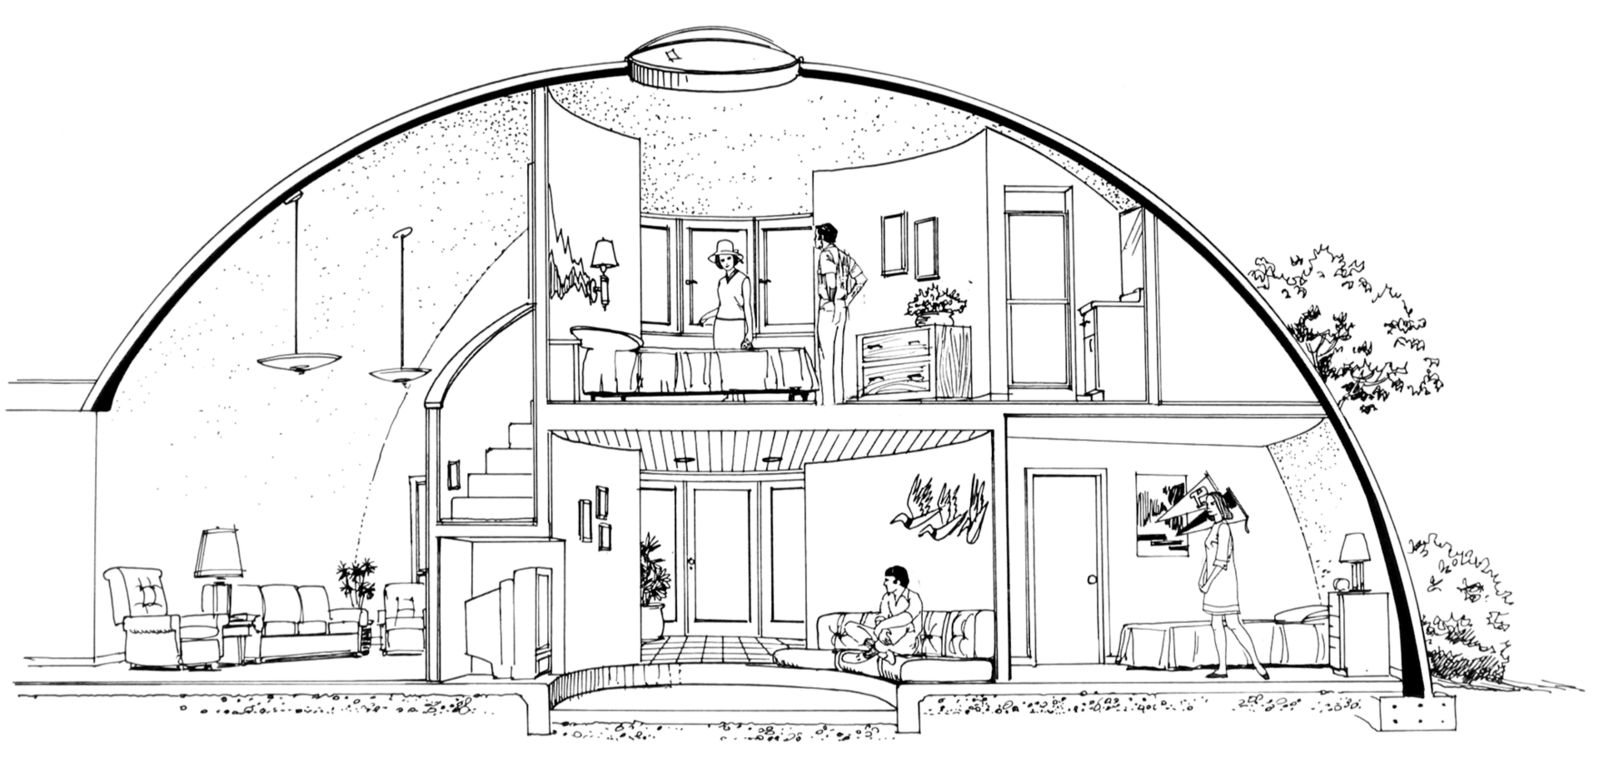 Artist's concept sketch of interior of a large Monolithic Dome home.